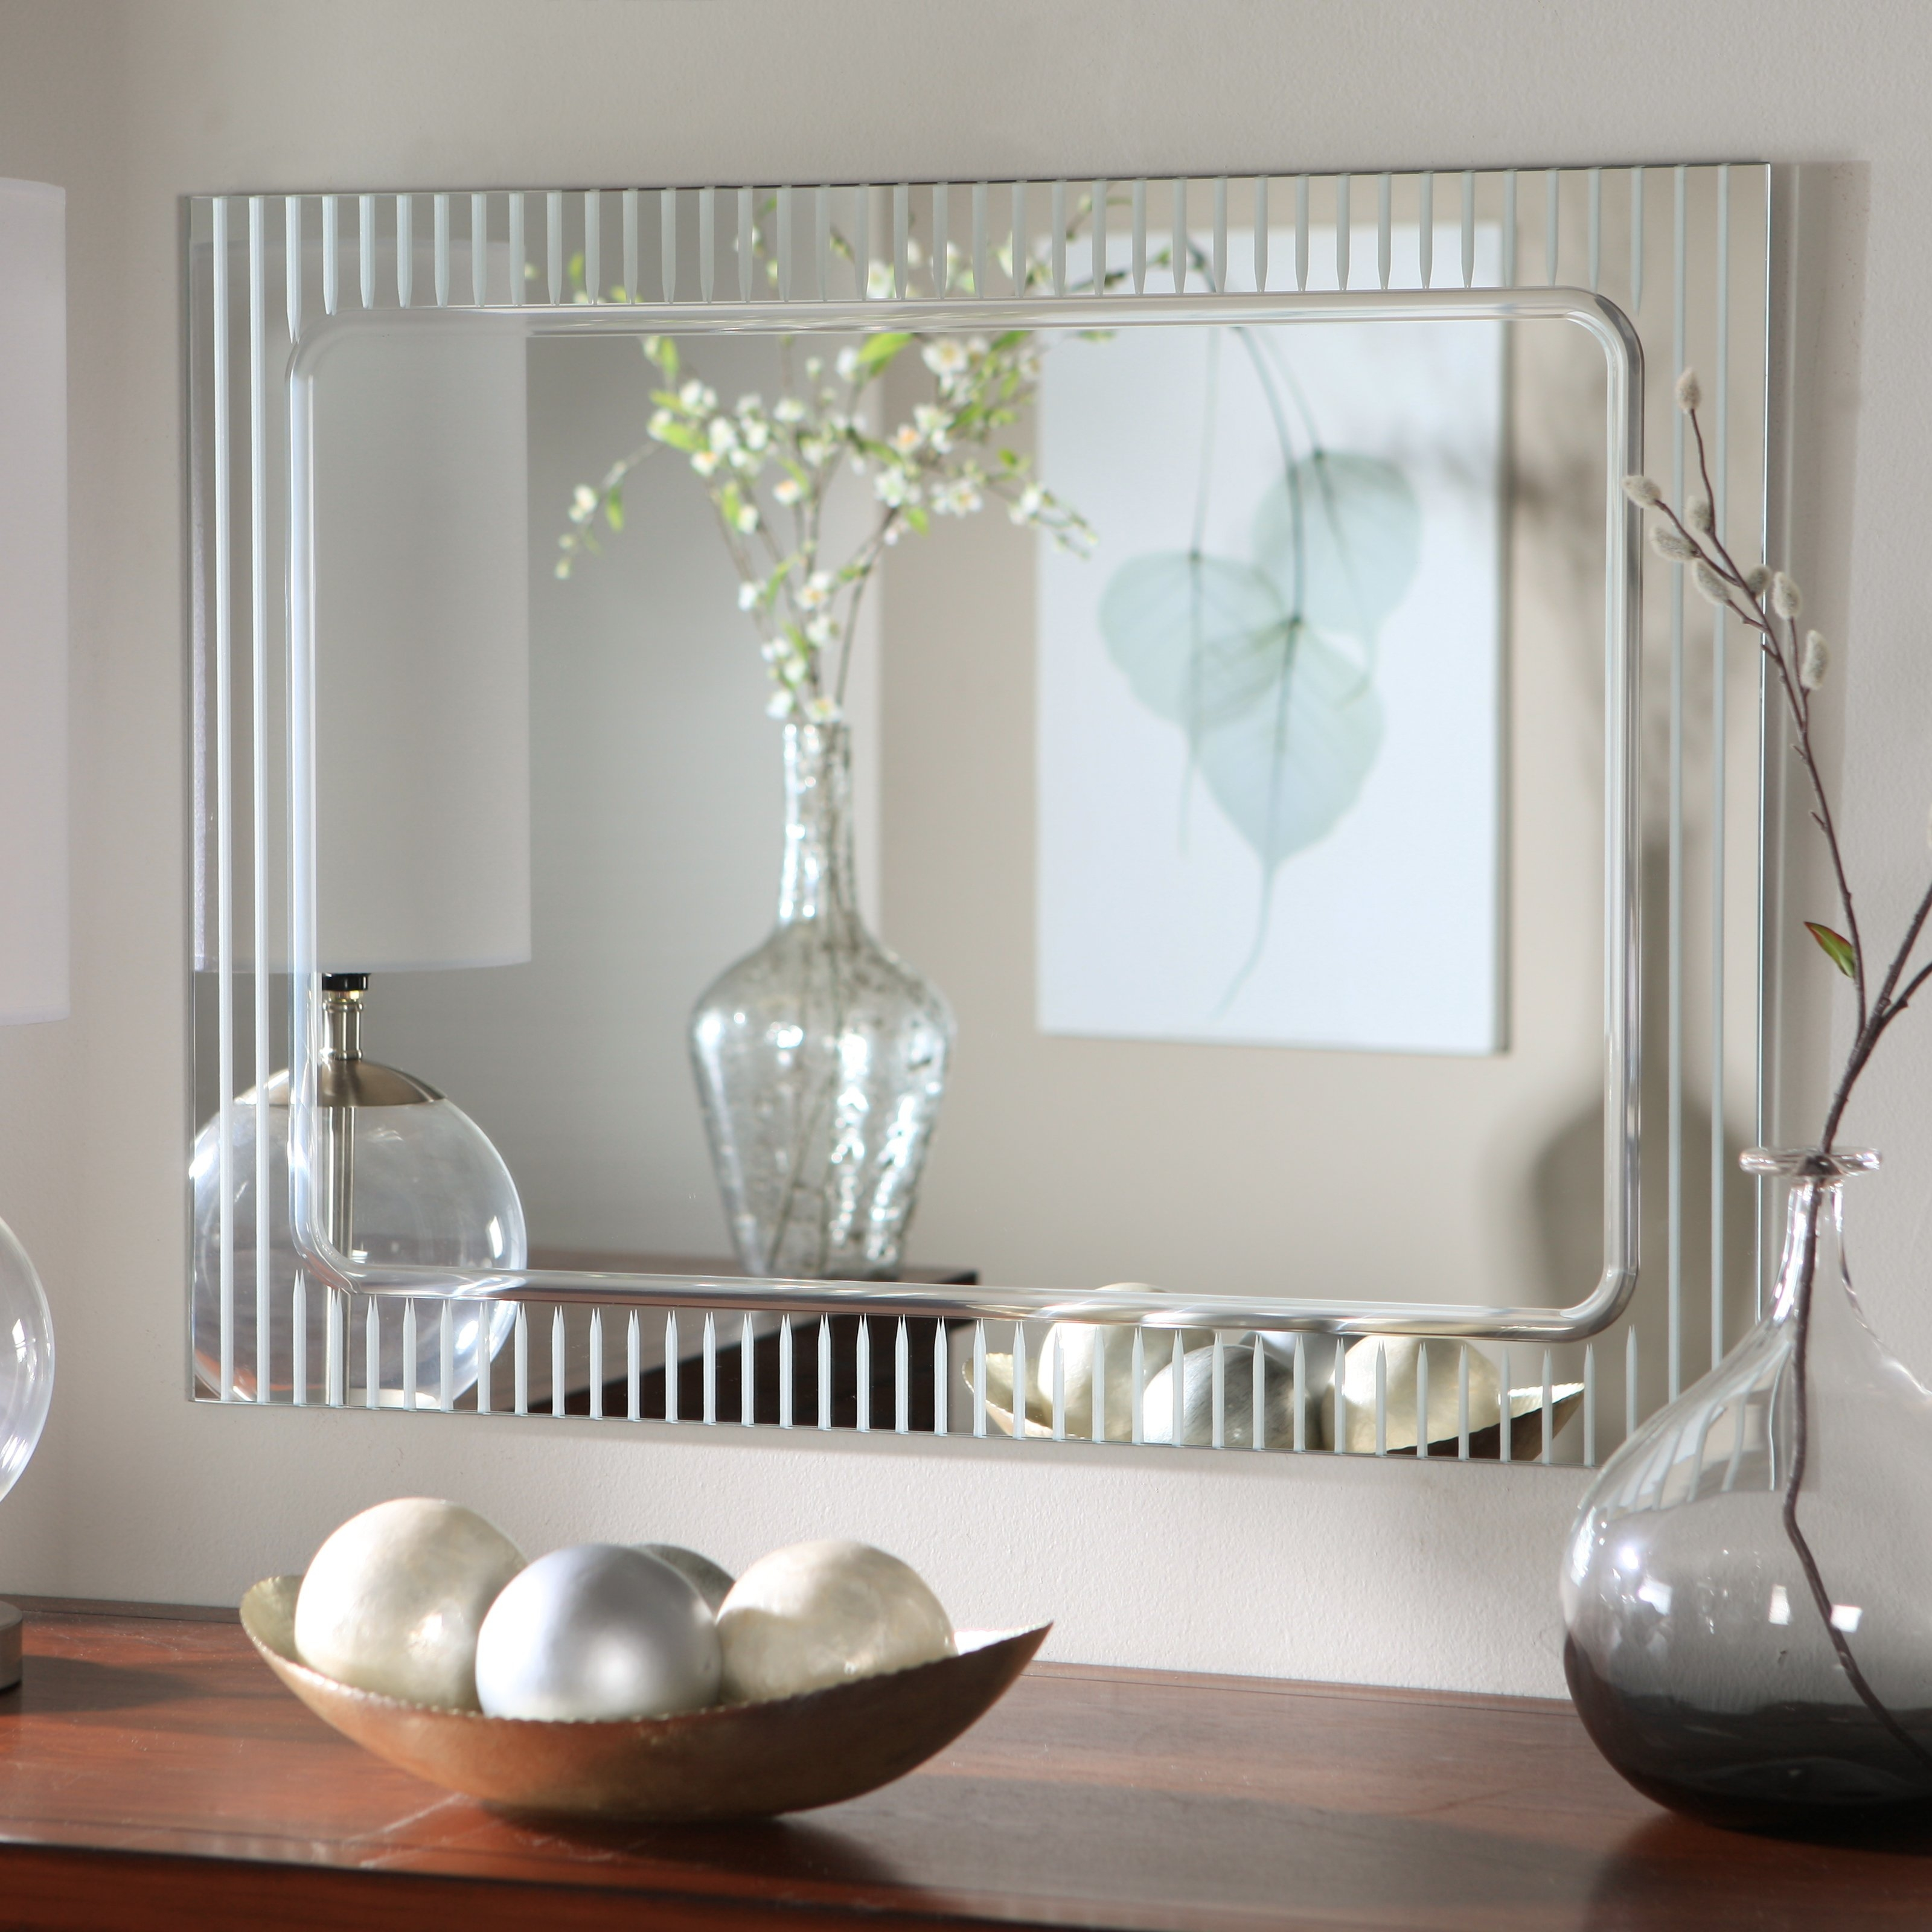 Decorating Bathrooms With Mirrors